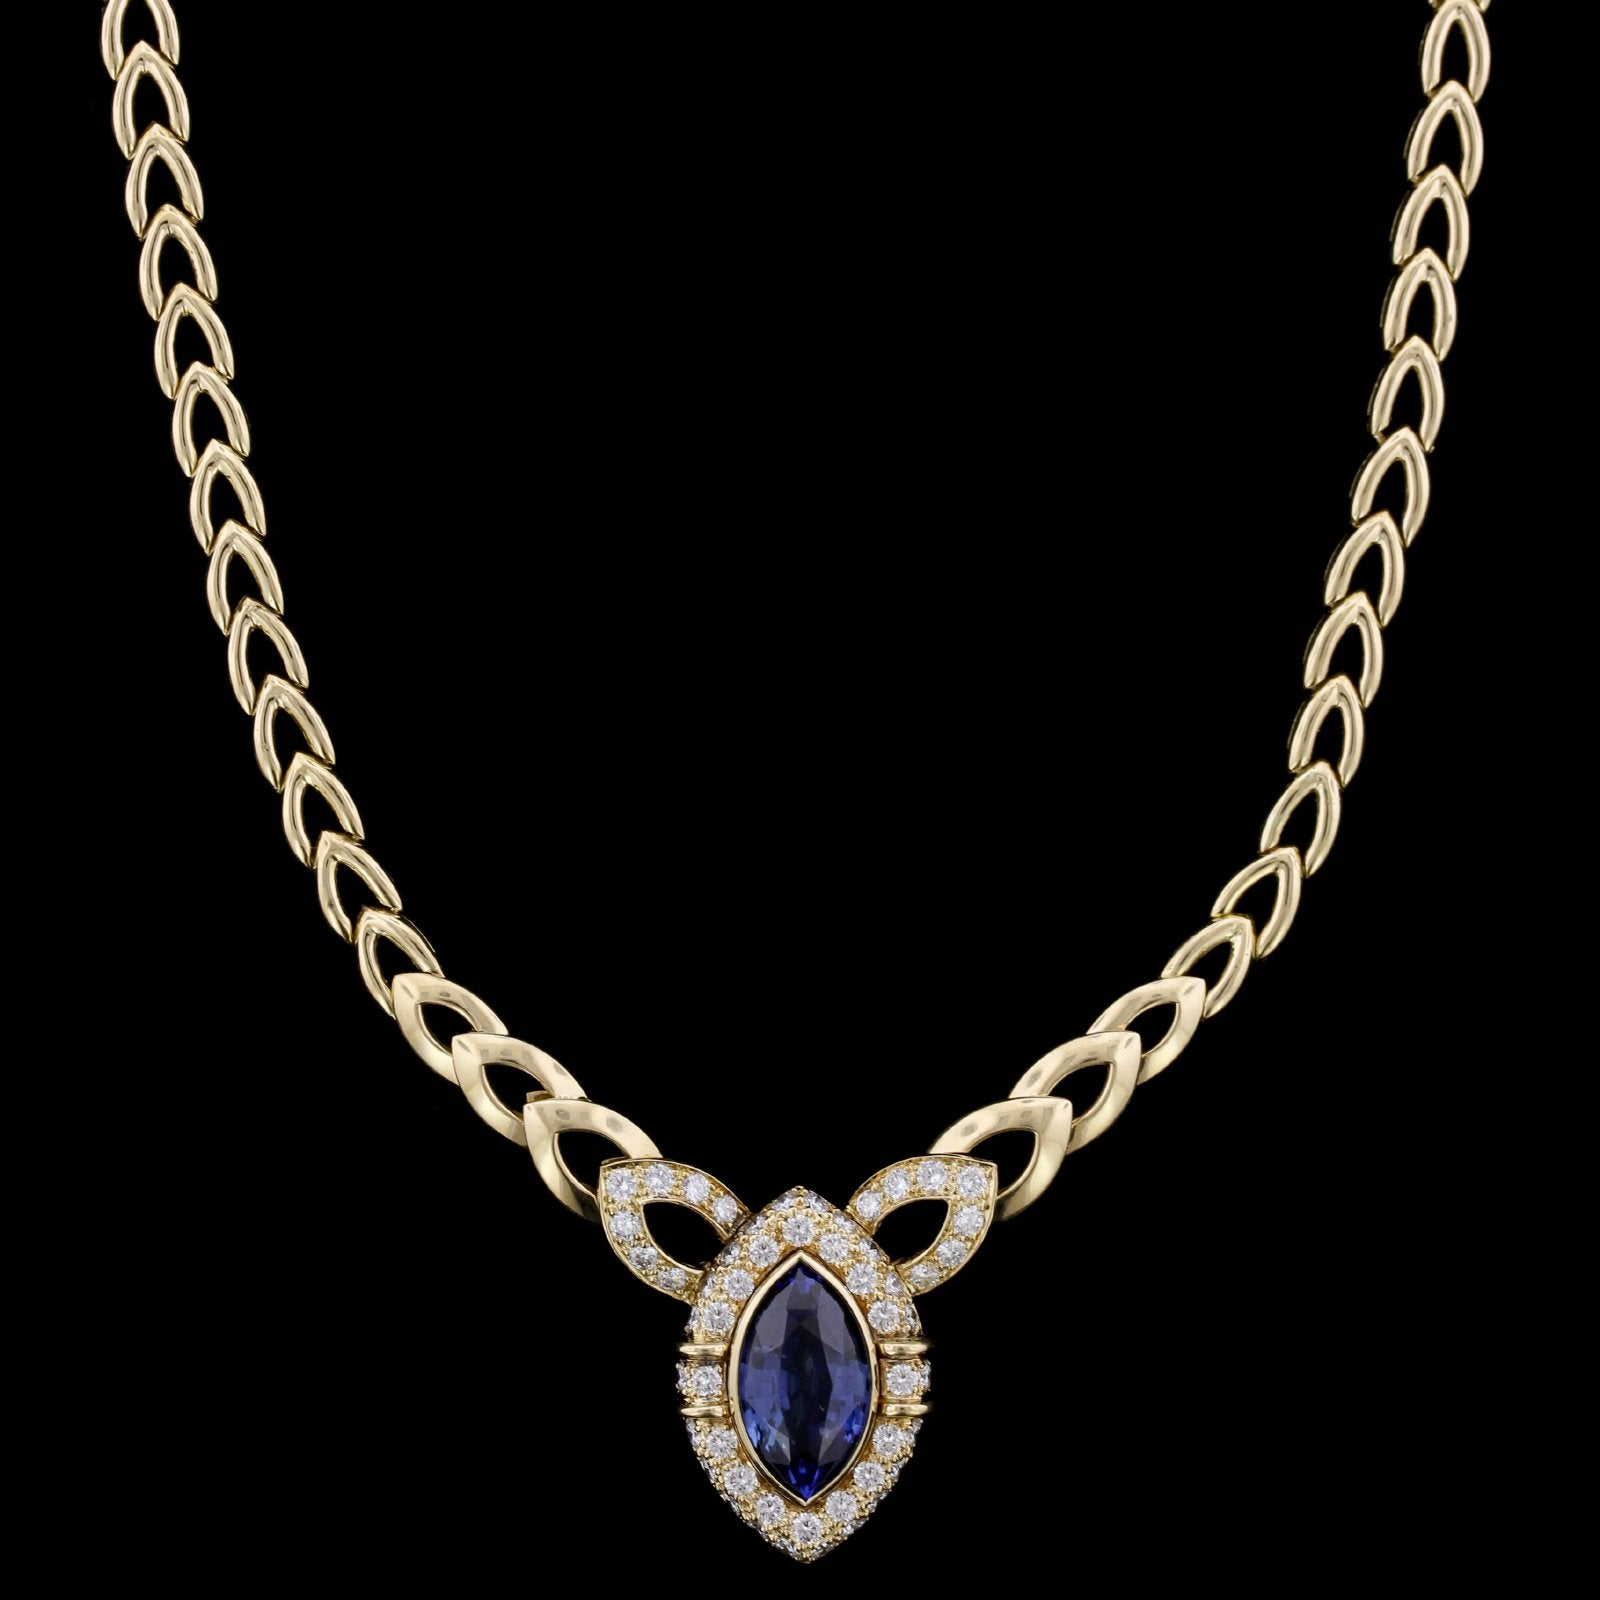 18K Yellow Gold Estate Sapphire and Diamond Necklace